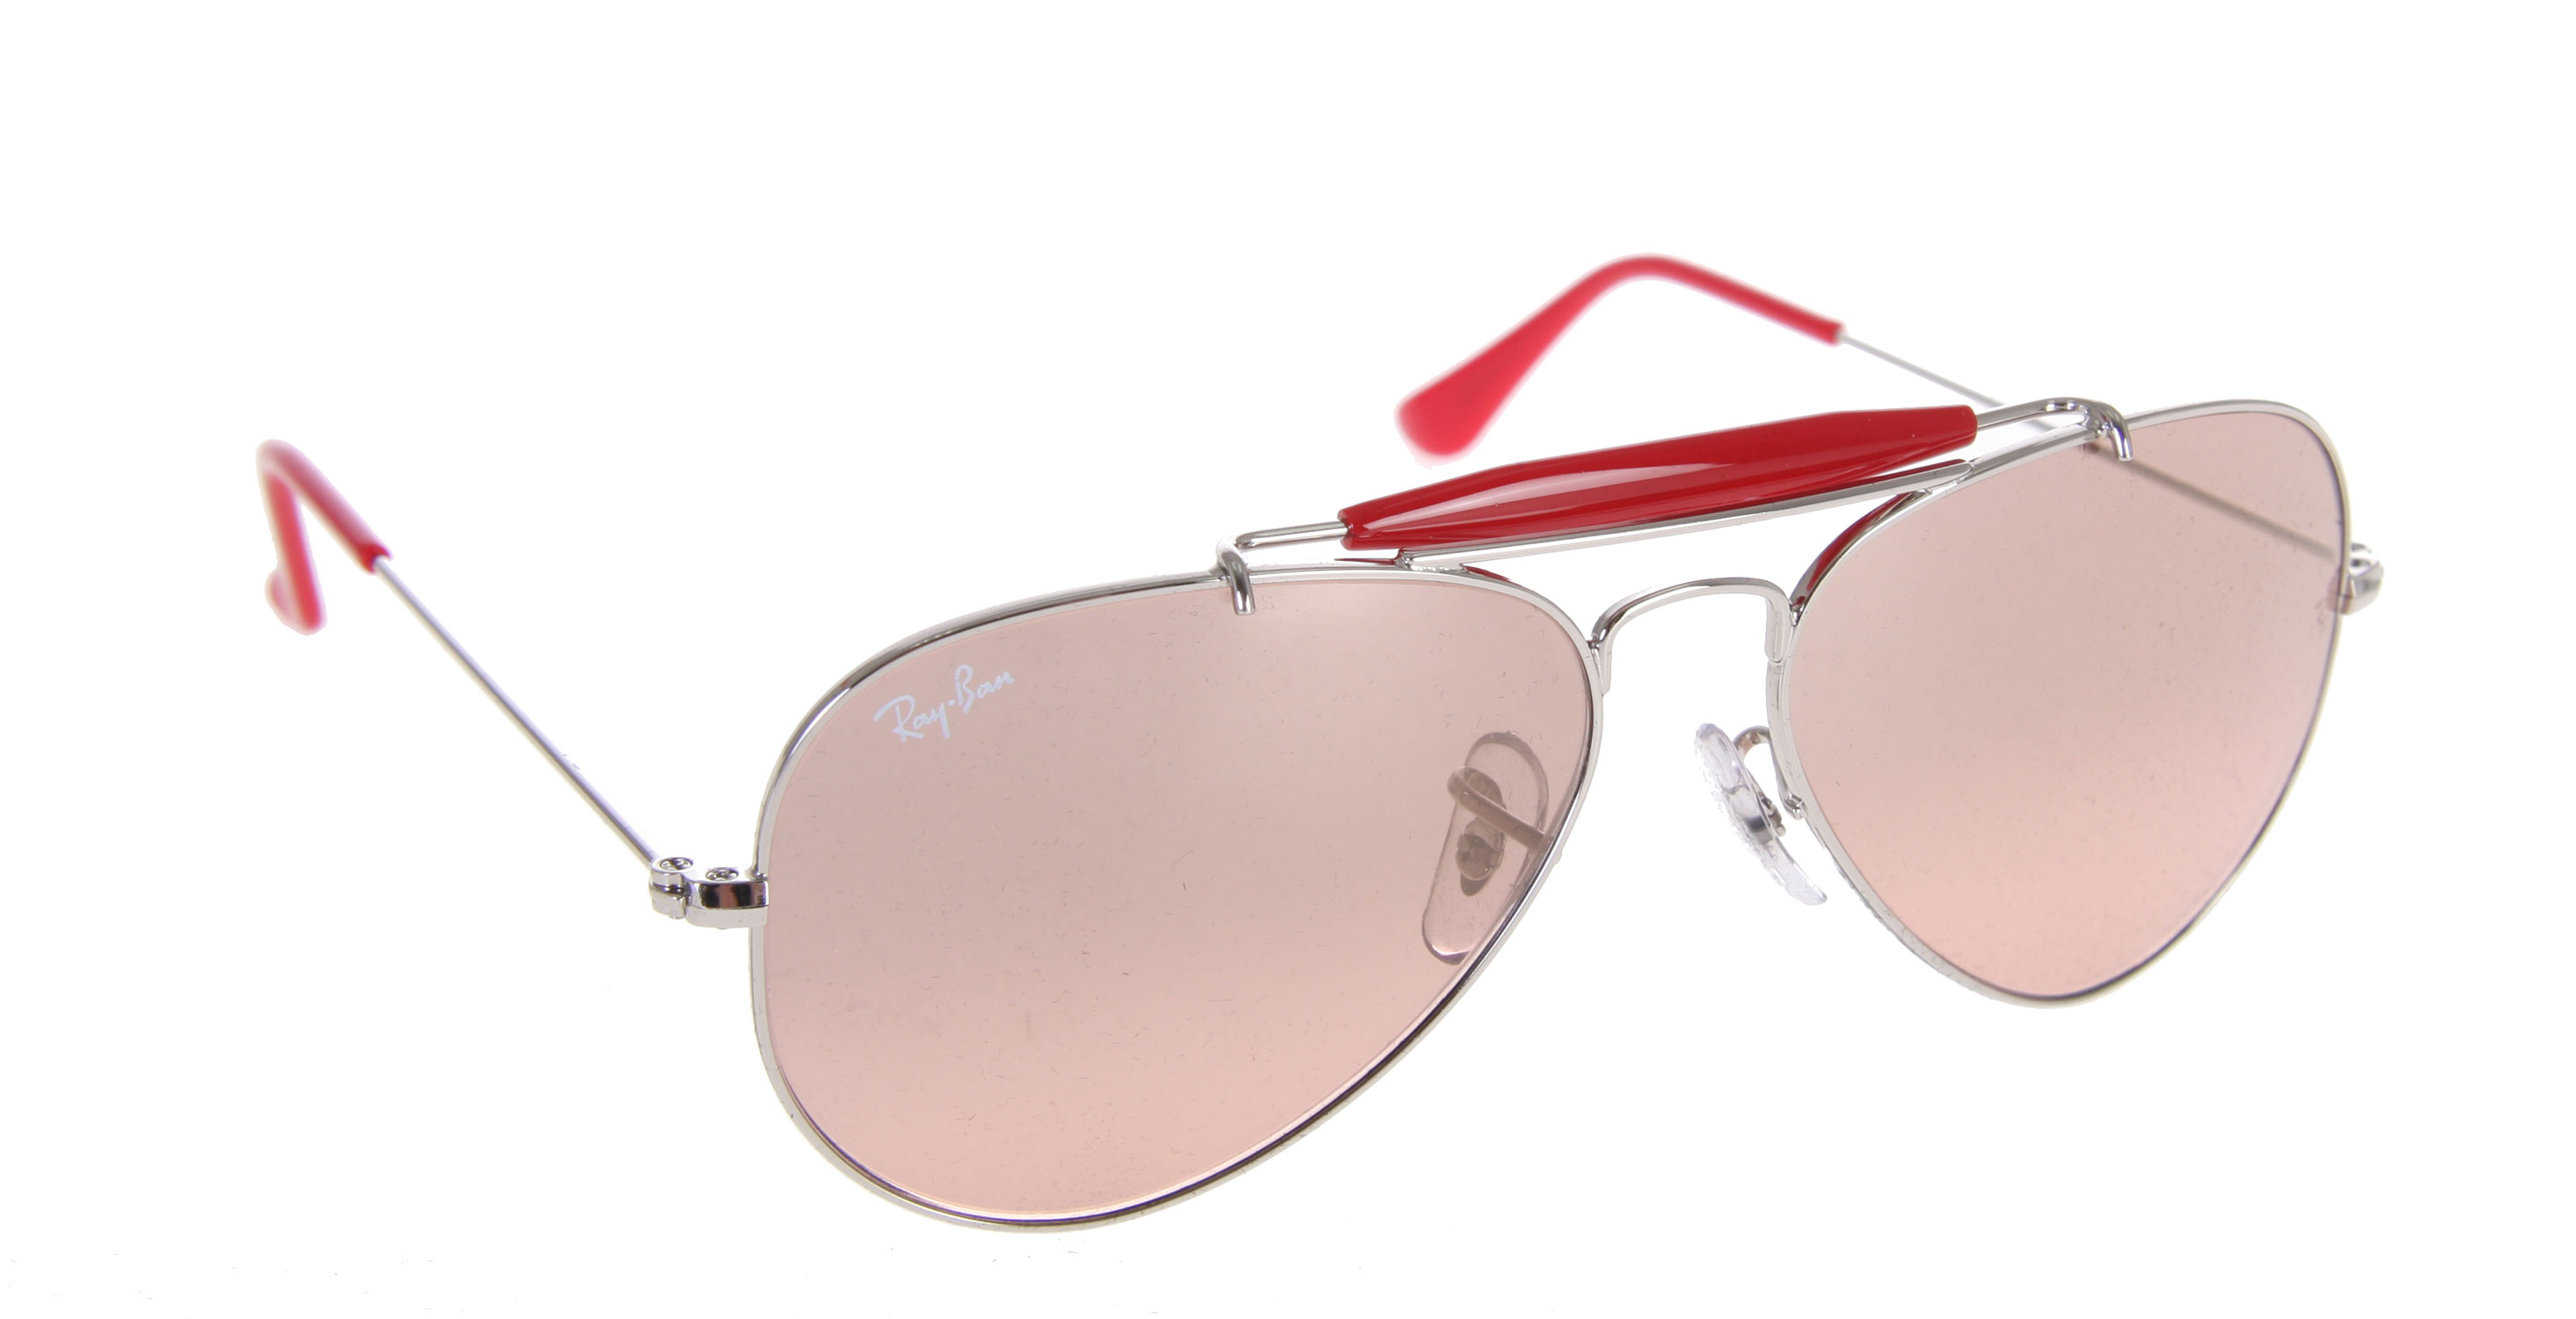 Entertainment The Outdoorsman II Rainbow is the iconic Aviator enhanced with a contrasting brow bar. This update is in line with today's colorful trends. The frames feature accent colors such as red and orange on the brow bar and temple tips. The look is completed with gradient and mirror lenses. - $138.95